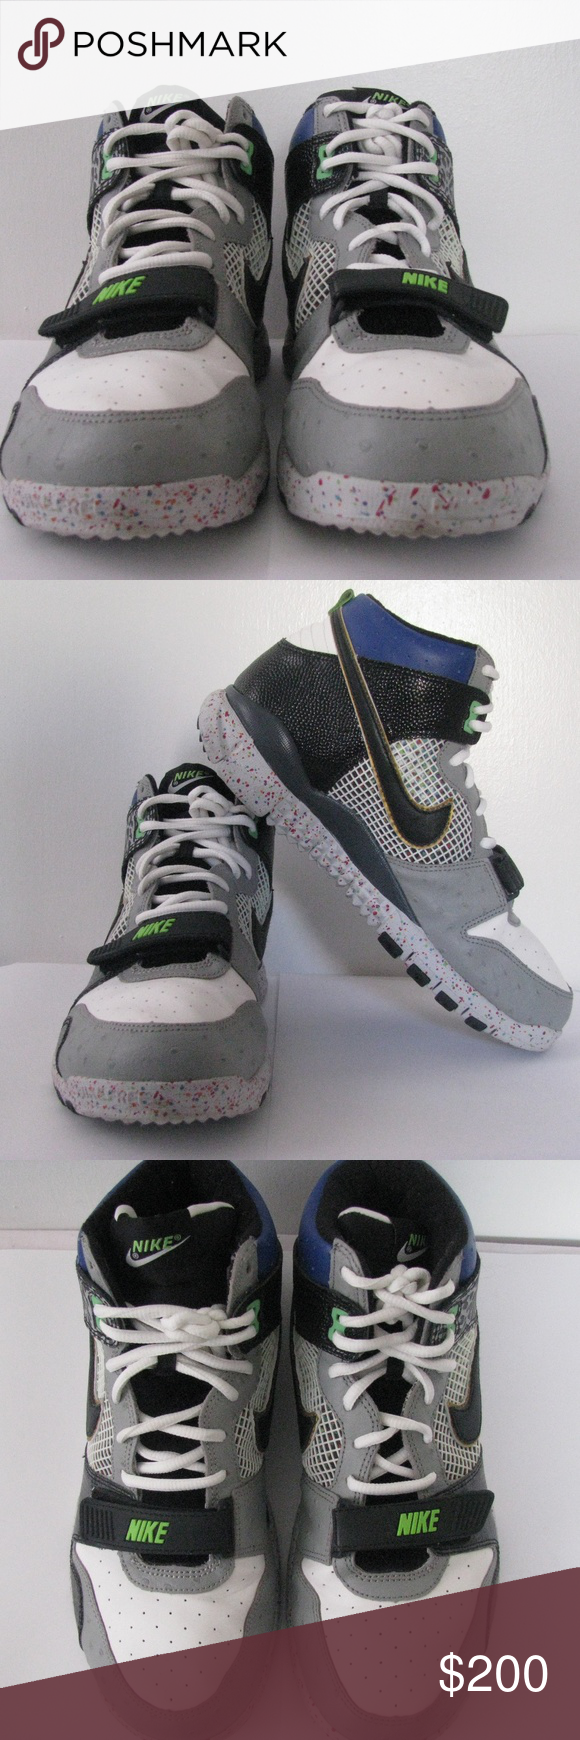 buy popular 6d649 46bbe Nike Trainer Dunk High x Mita Nike Trainer Dunk High x Mita Worn once -  very good condition Nike Shoes Sneakers